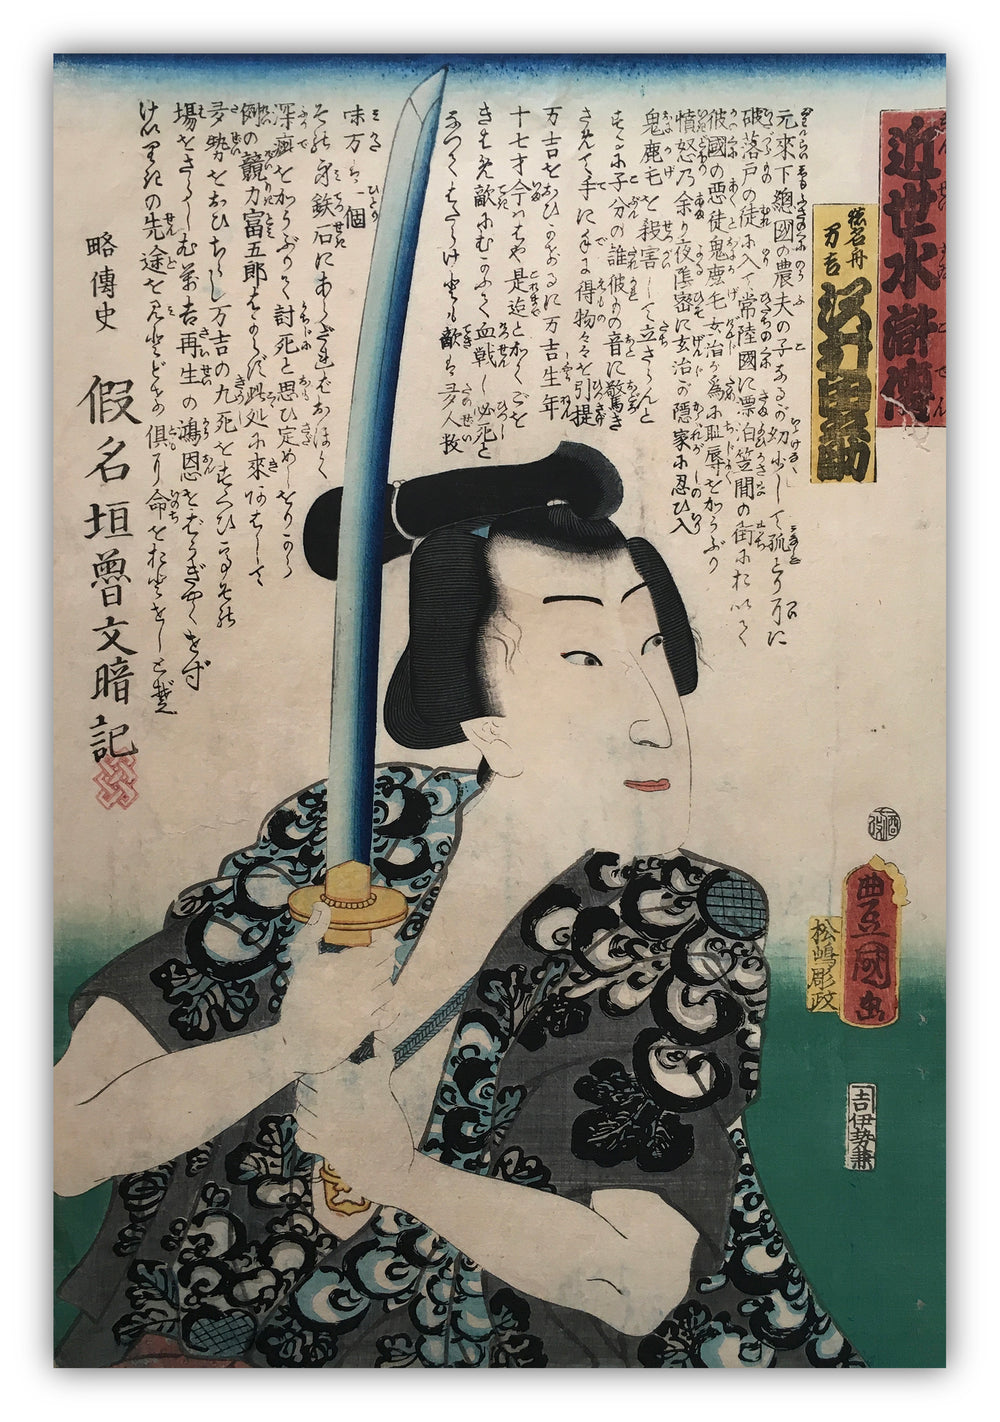 Modern Version of Water Margin / Tokunafune Mankichi interpreted by Sawamura Tanosuke (Utagawa Kunisada (Toyokuni III), 1861)